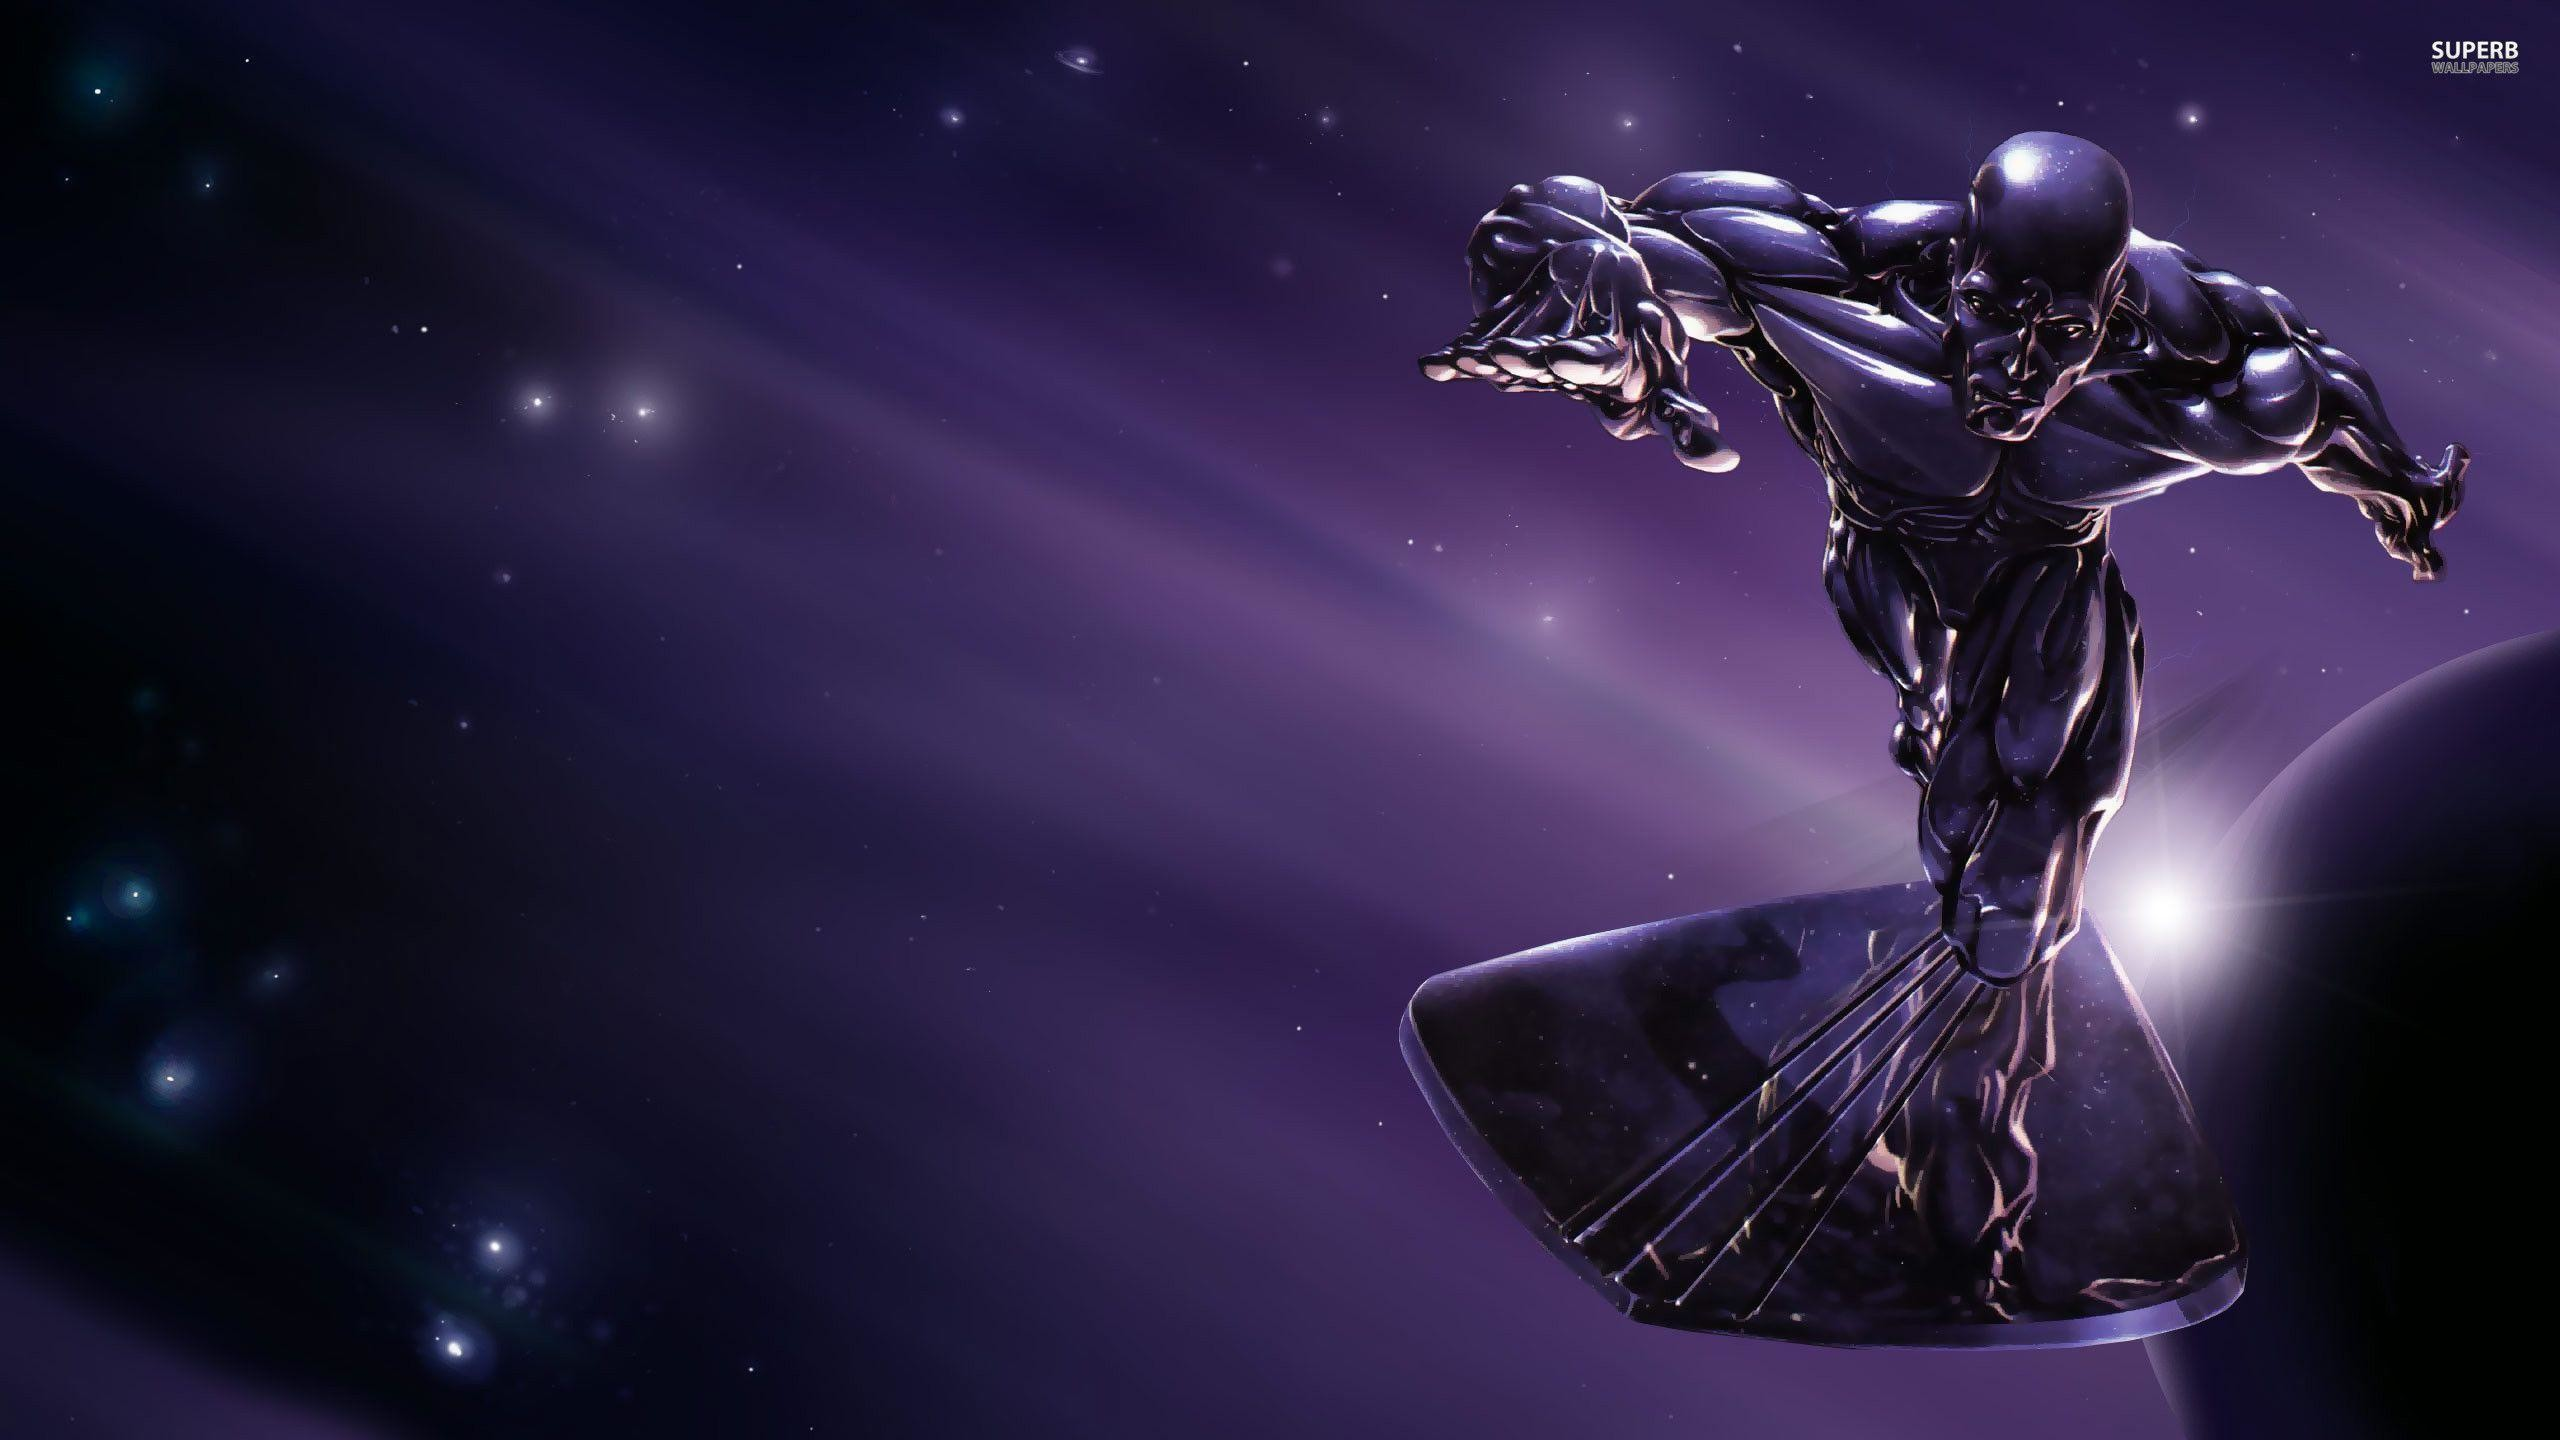 2560x1440 Fantastic 4: Rise of the Silver Surfer wallpaper - Movie .